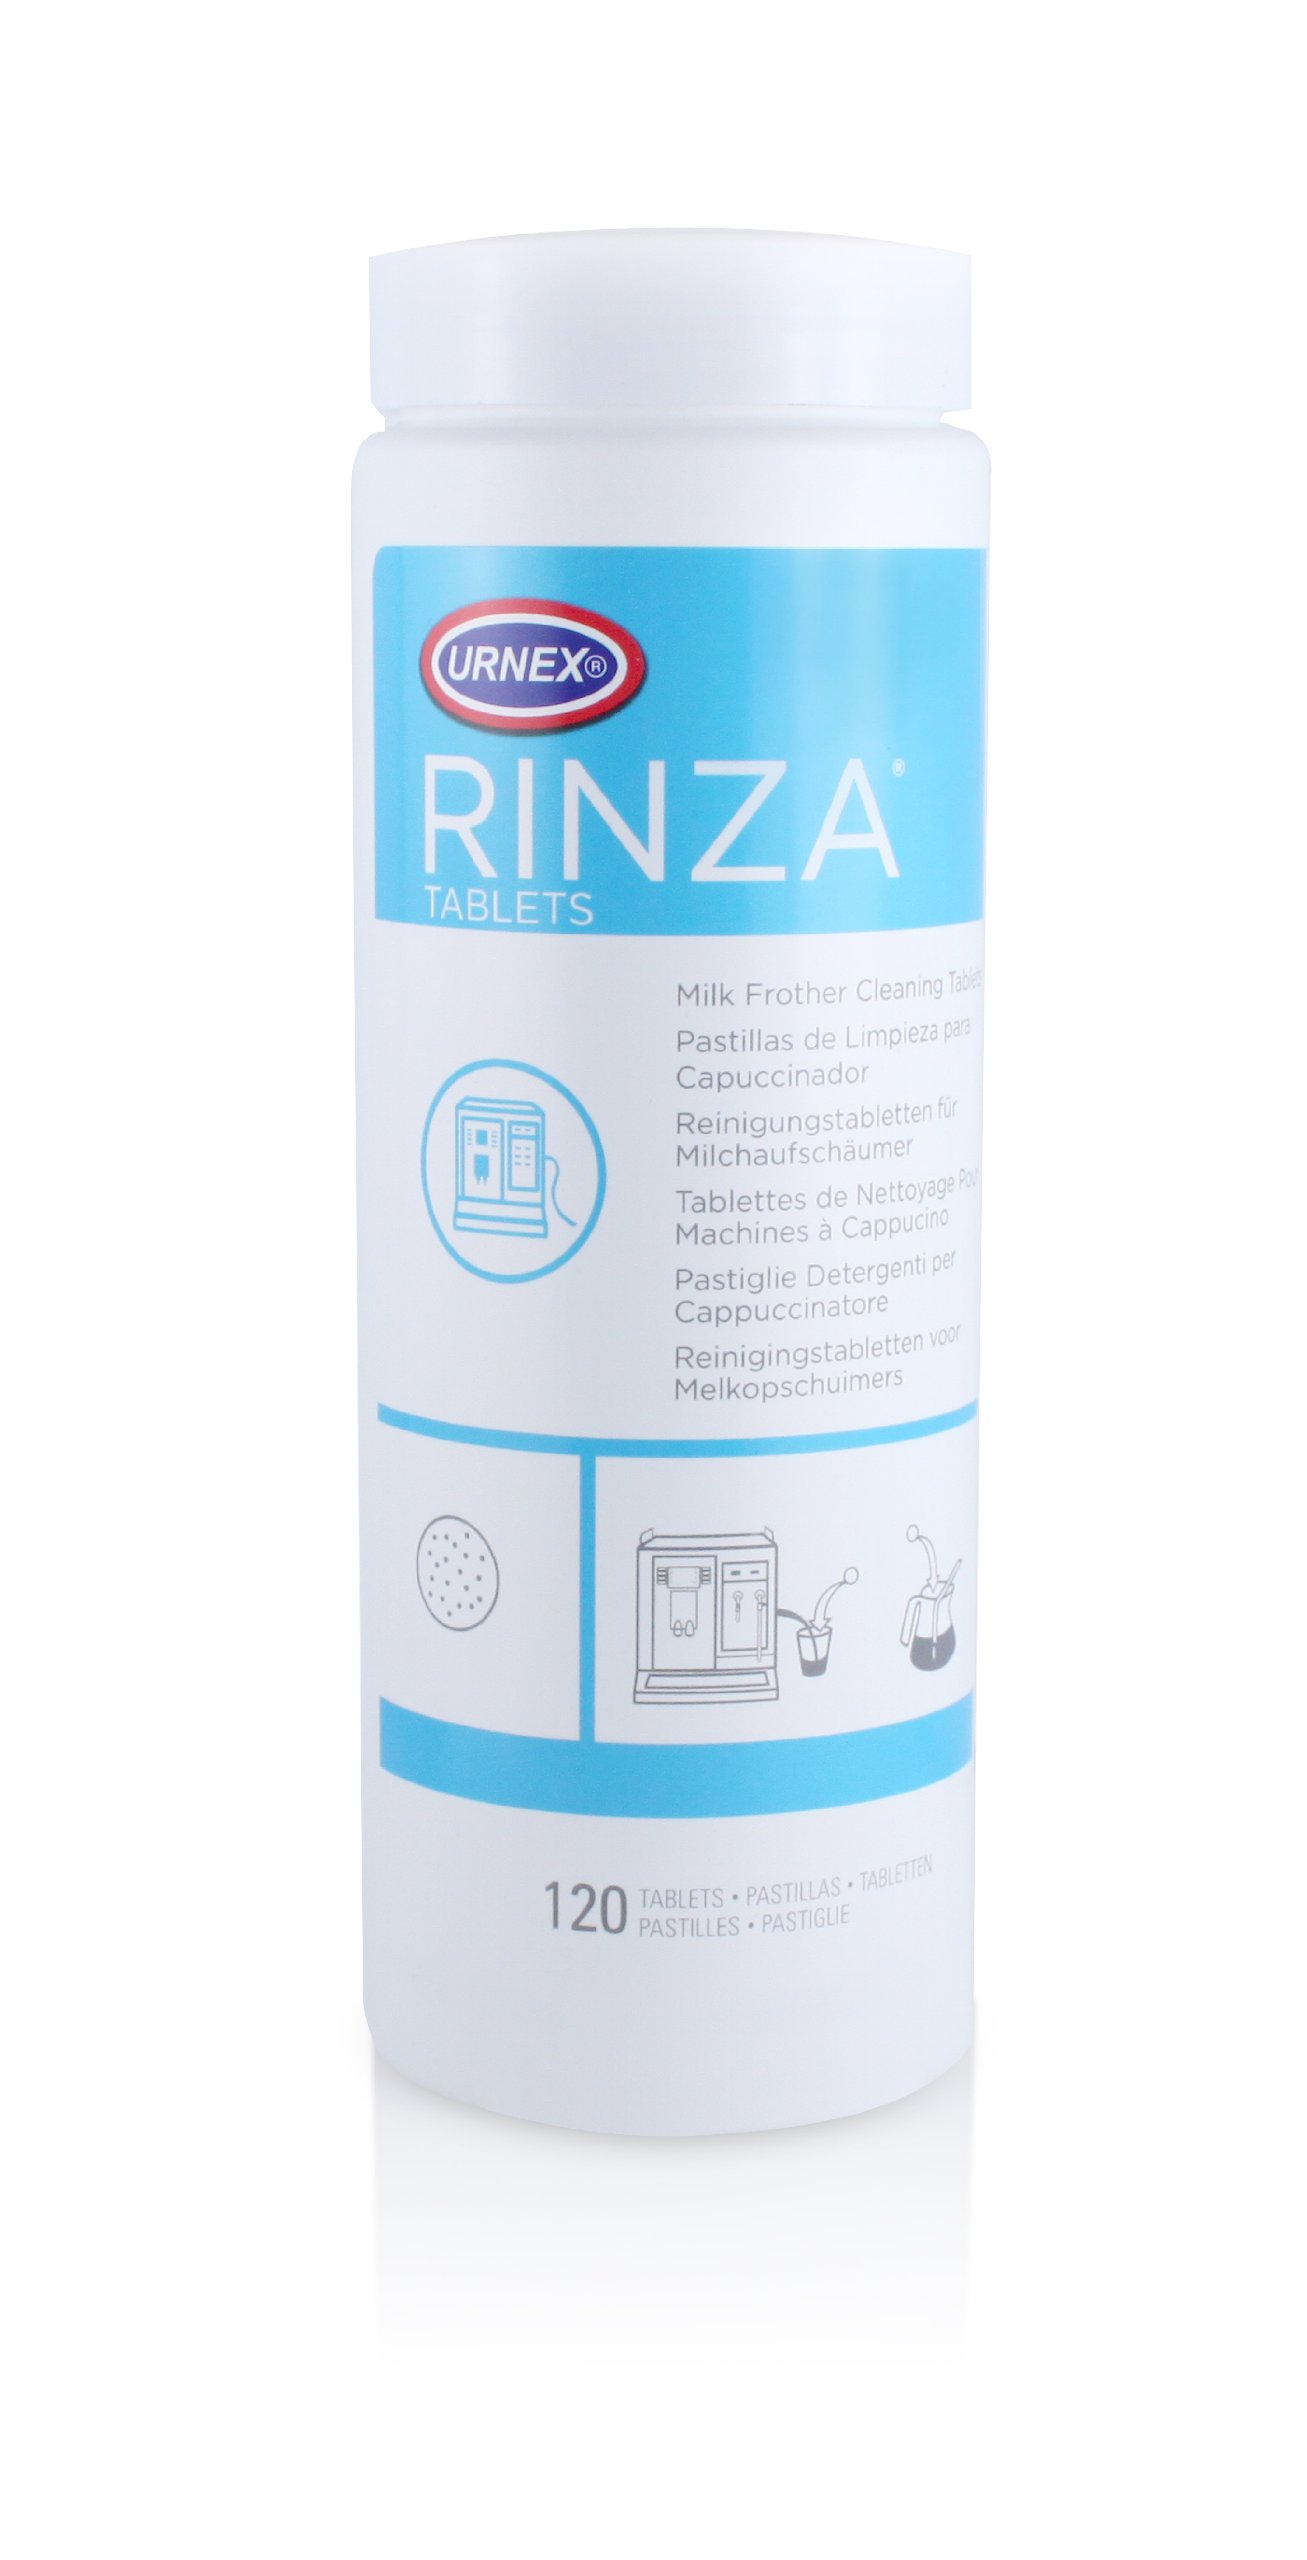 Rinza Milk Frother Cleaning Tablets - 120 tablets - Breaks Down Milk Protein Fat and Calcium Build Up